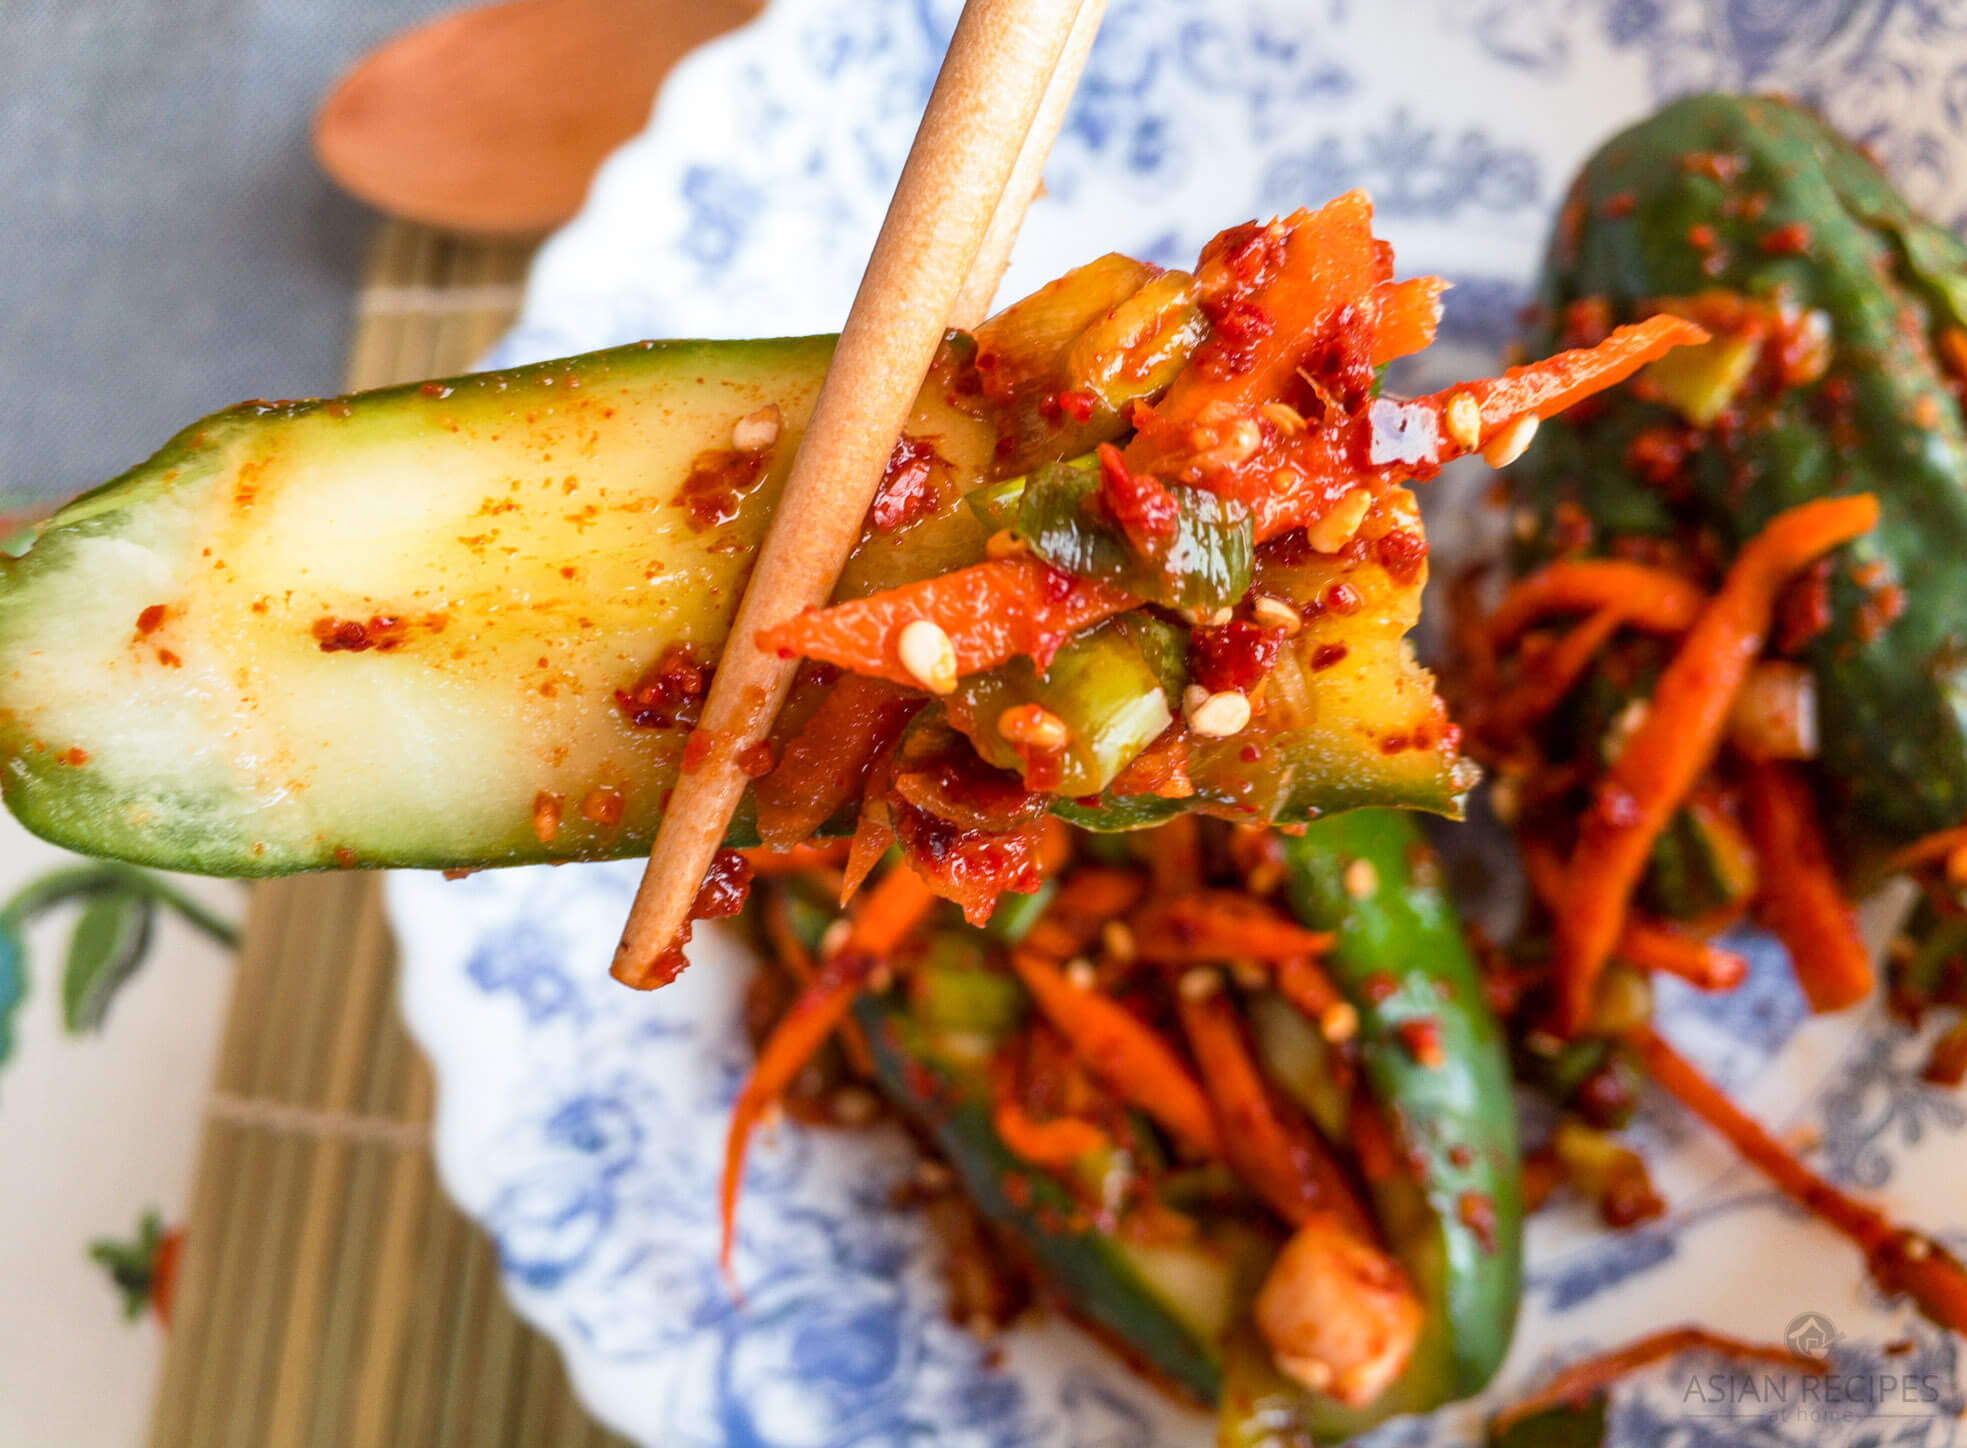 This stuffed Korean cucumber kimchi recipe is so delicious, crunchy, light, and spicy. Perfect for a hot summer day!